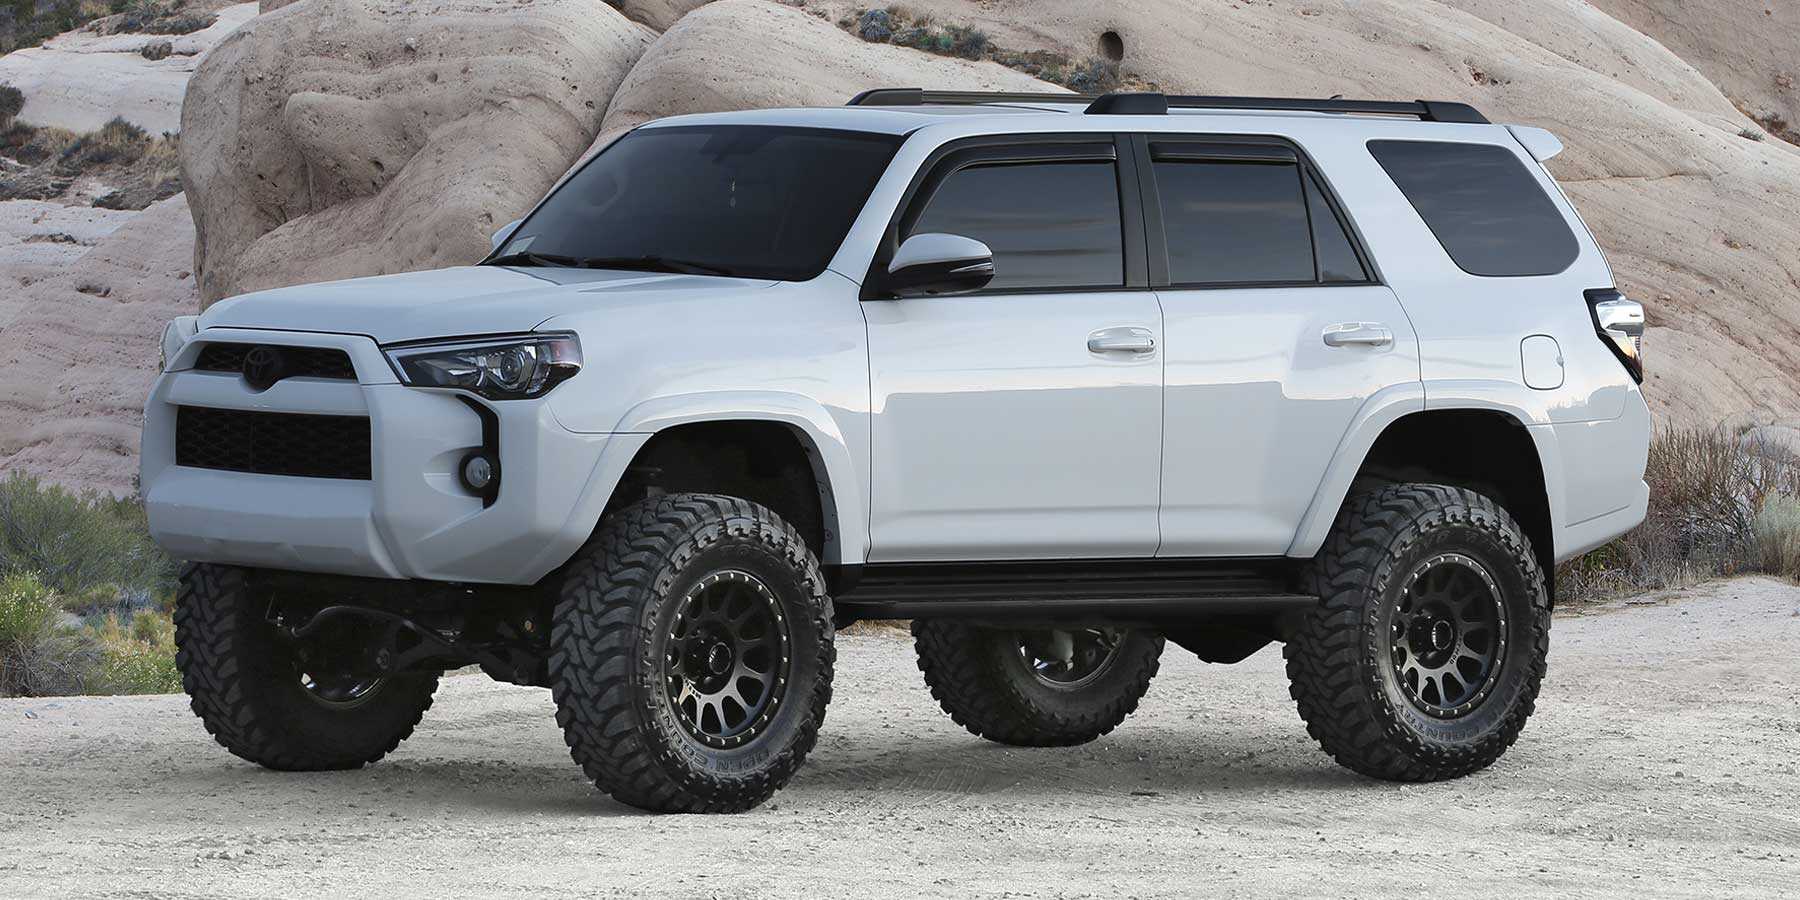 Lifted 4runner For Sale >> 2010 17 Toyota 4runner 4wd 6 Systems Fabtech